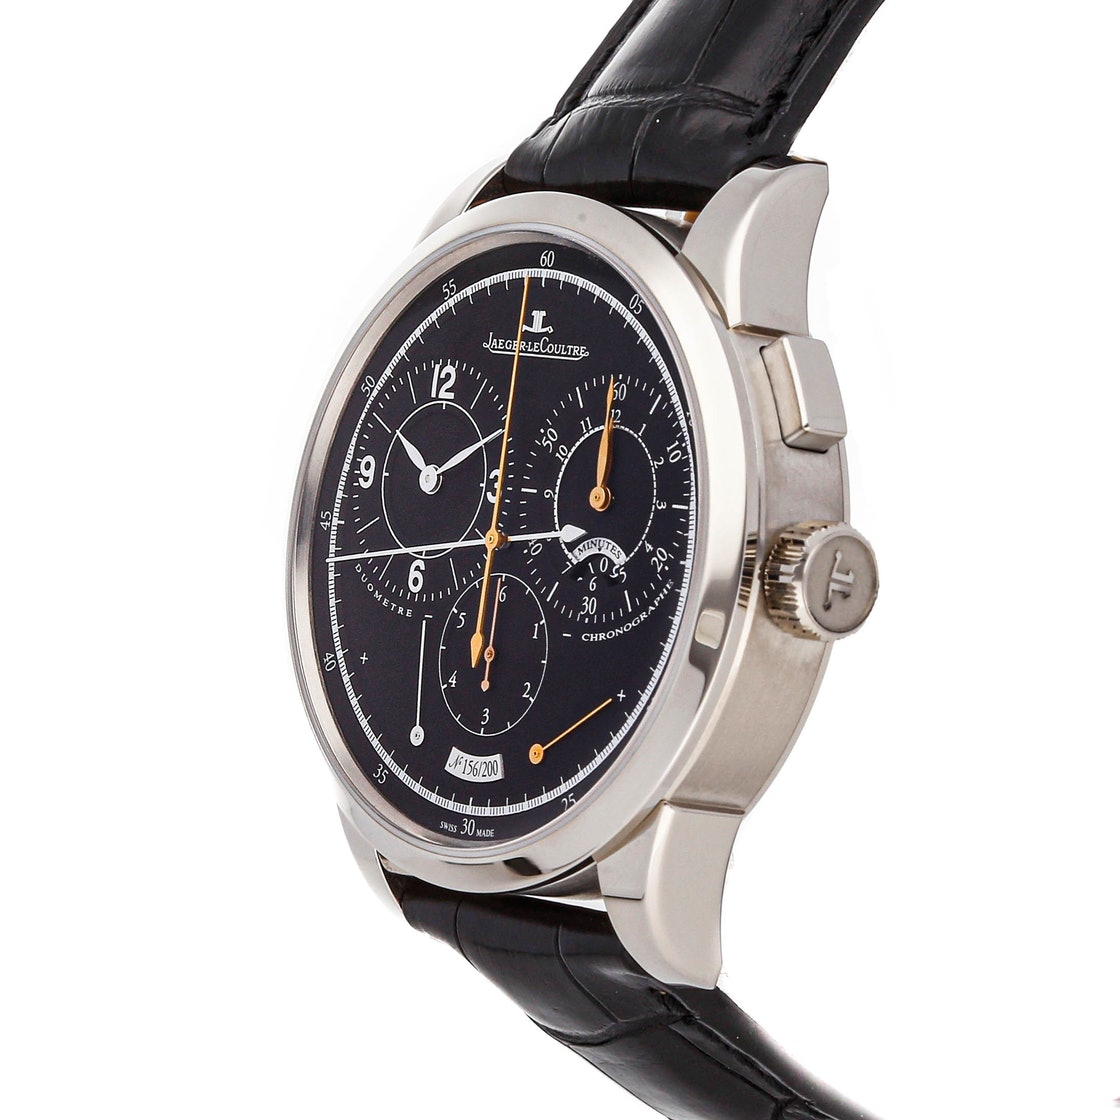 Jaeger-LeCoultre Duometre a Chronographe Limited Edition Q6013470